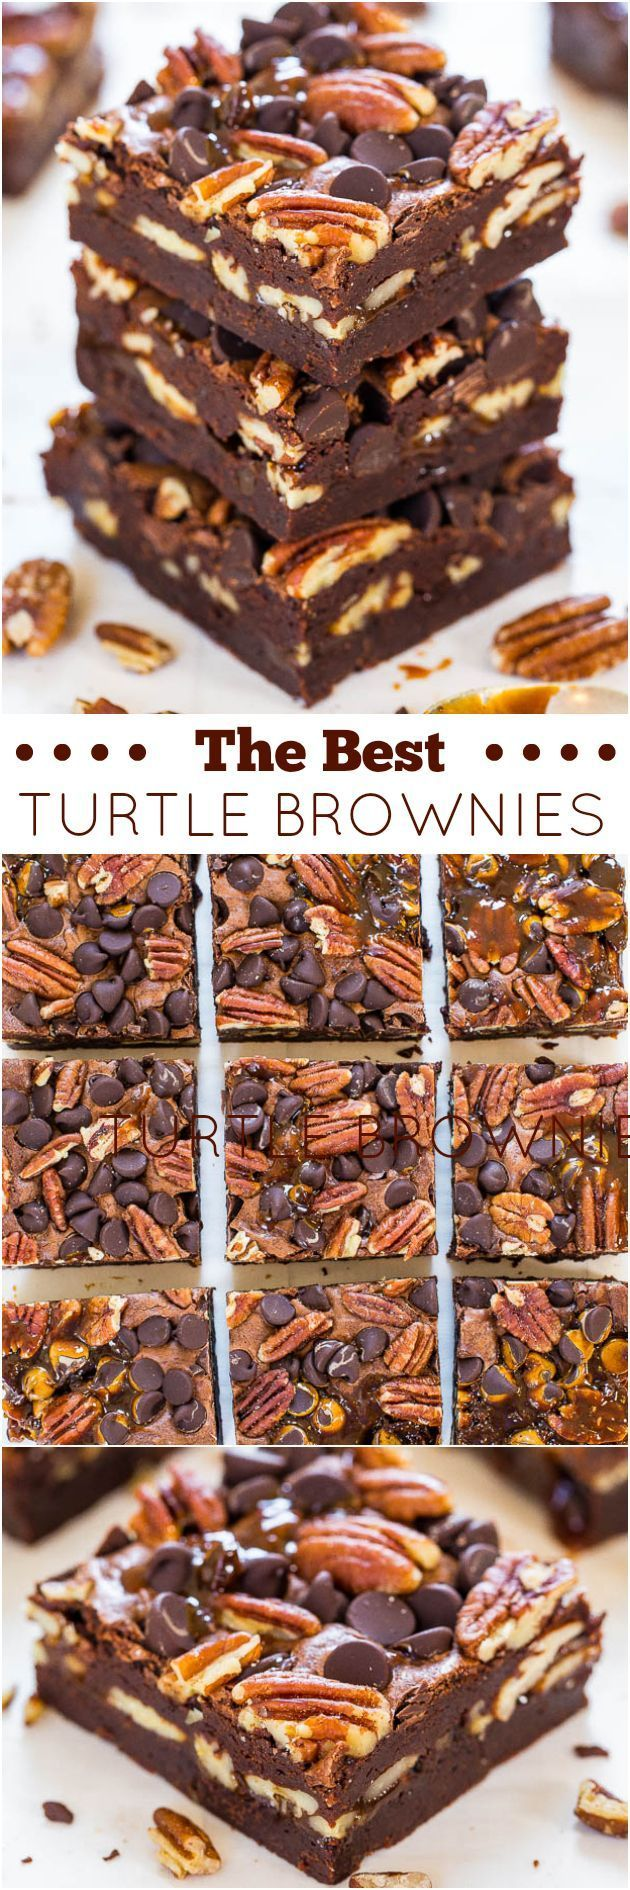 The Best Turtle Brownies - Super fudgy and loaded with chocolate, pecans and caramel! So.crazy.good!!! The first to disappear at any party!